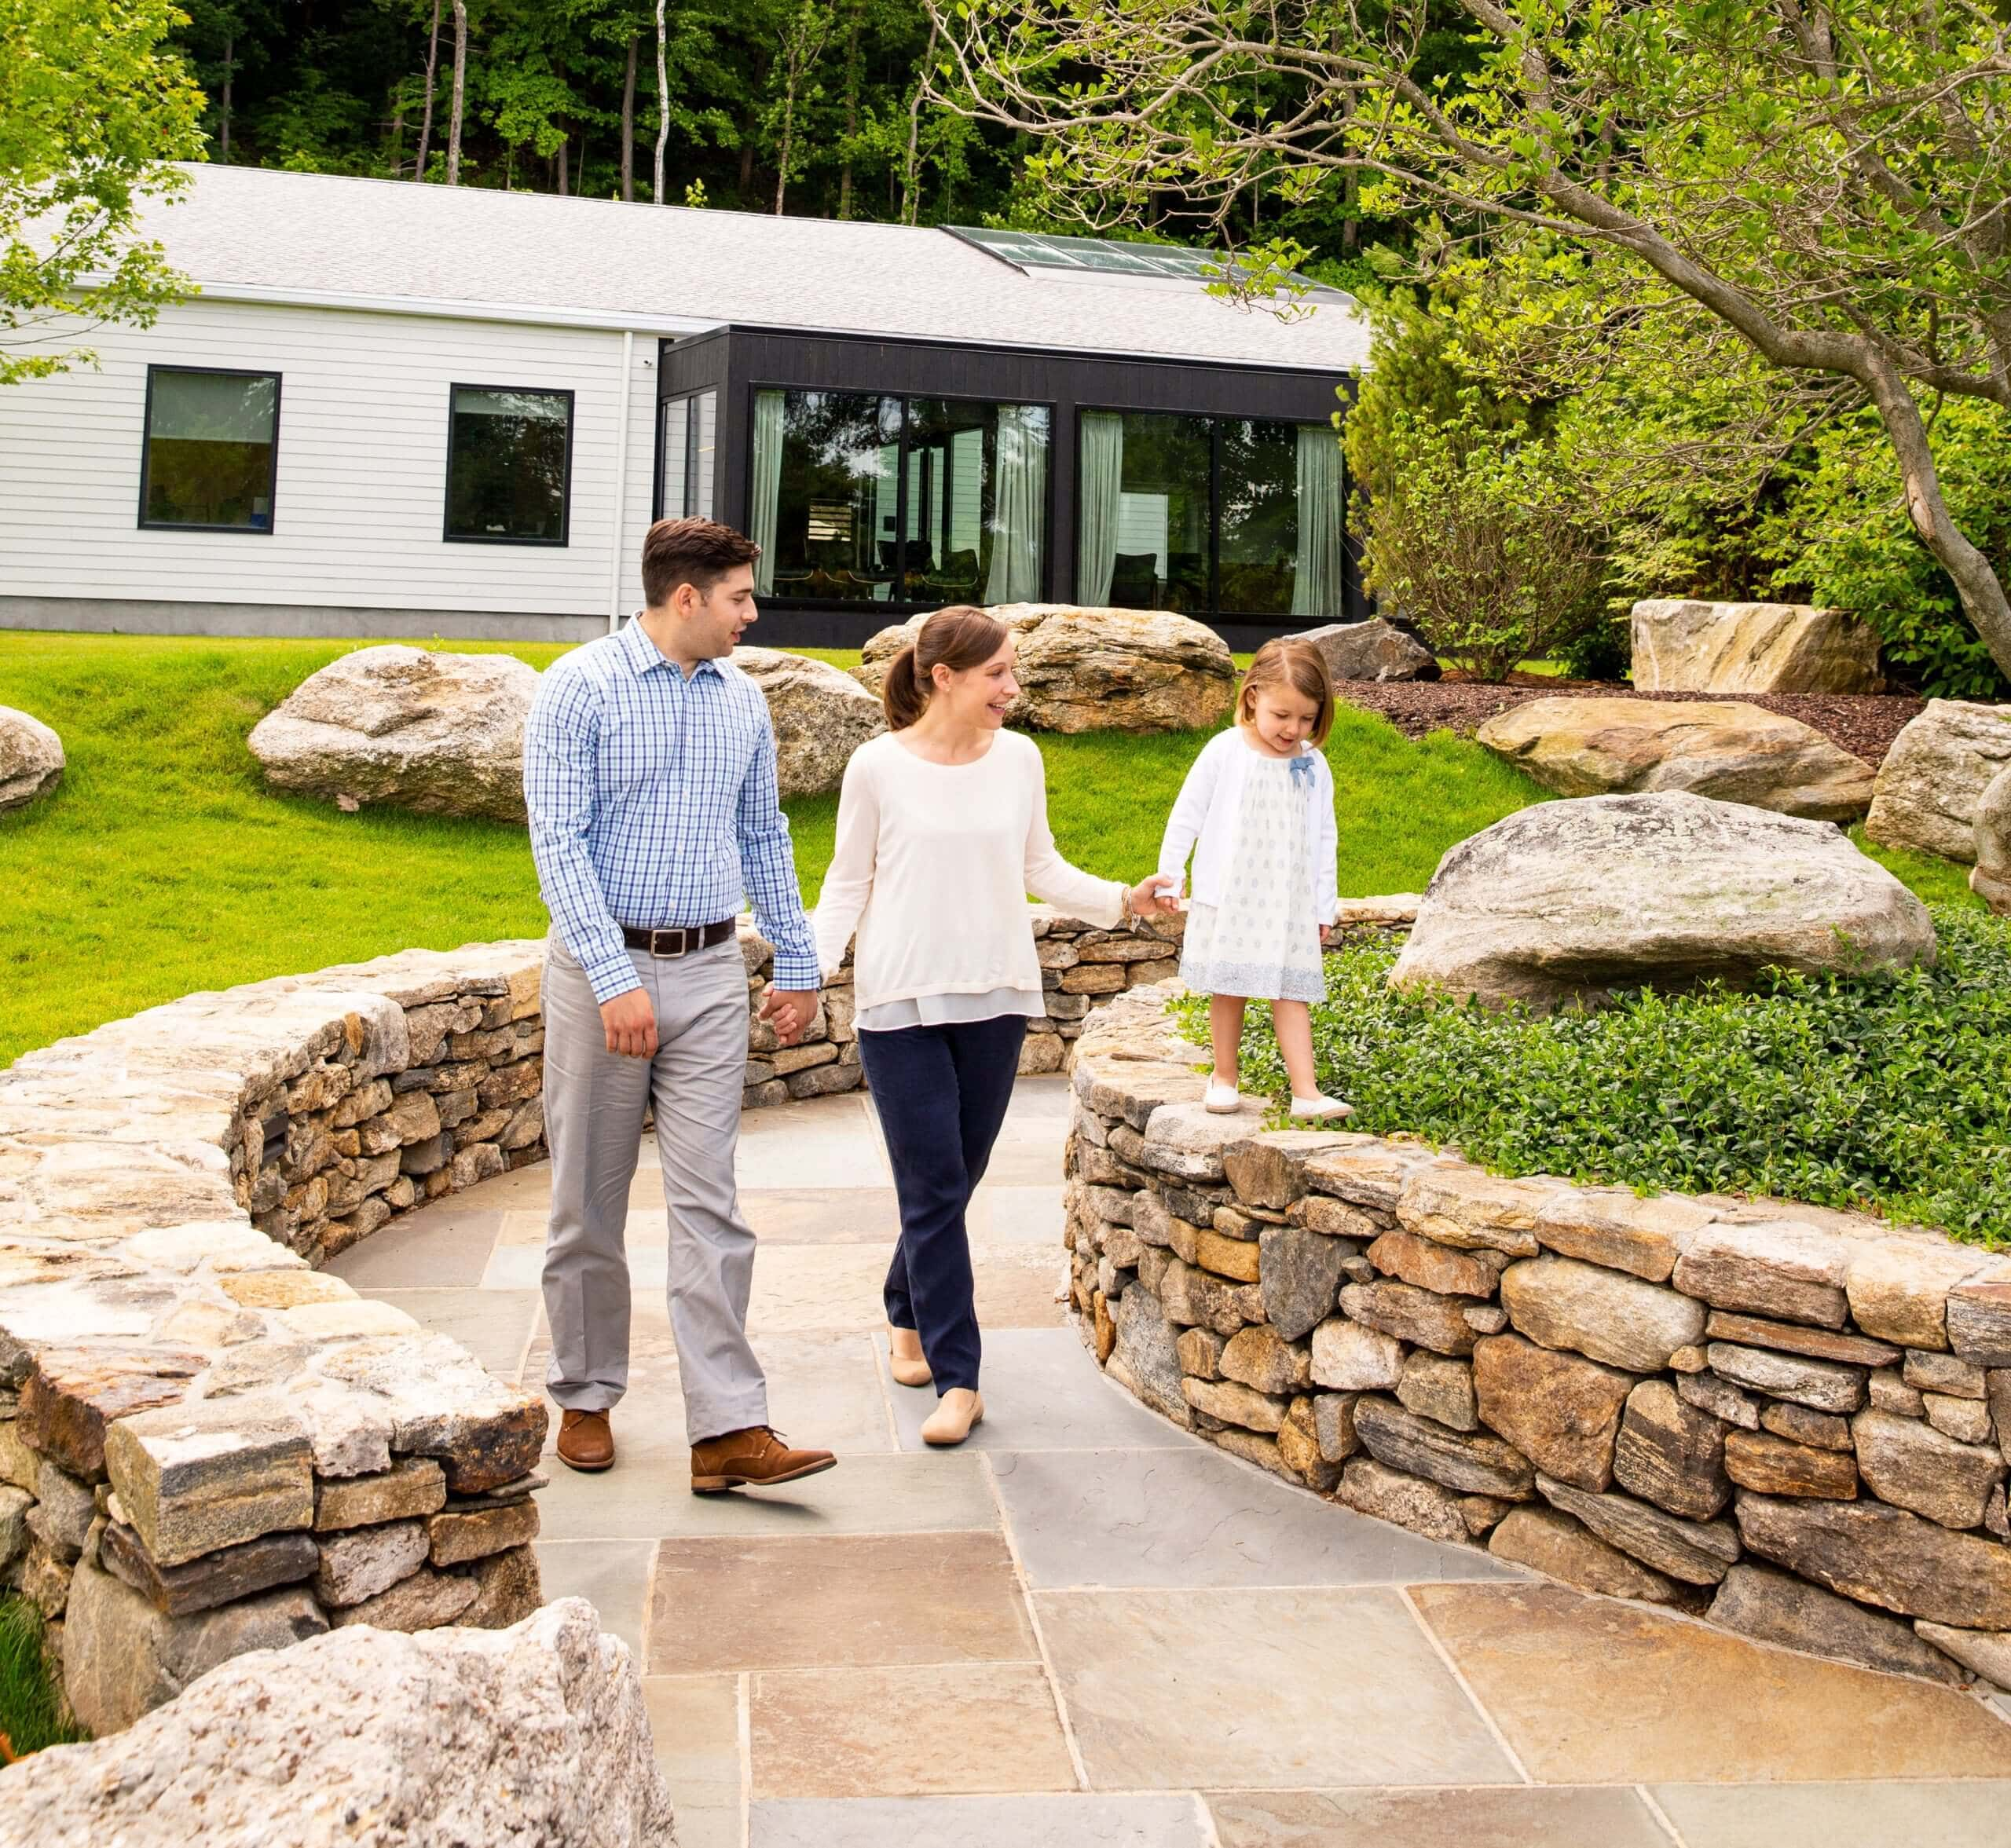 Family strolling in Mountainside's Addiction Treatment Center's Courtyard